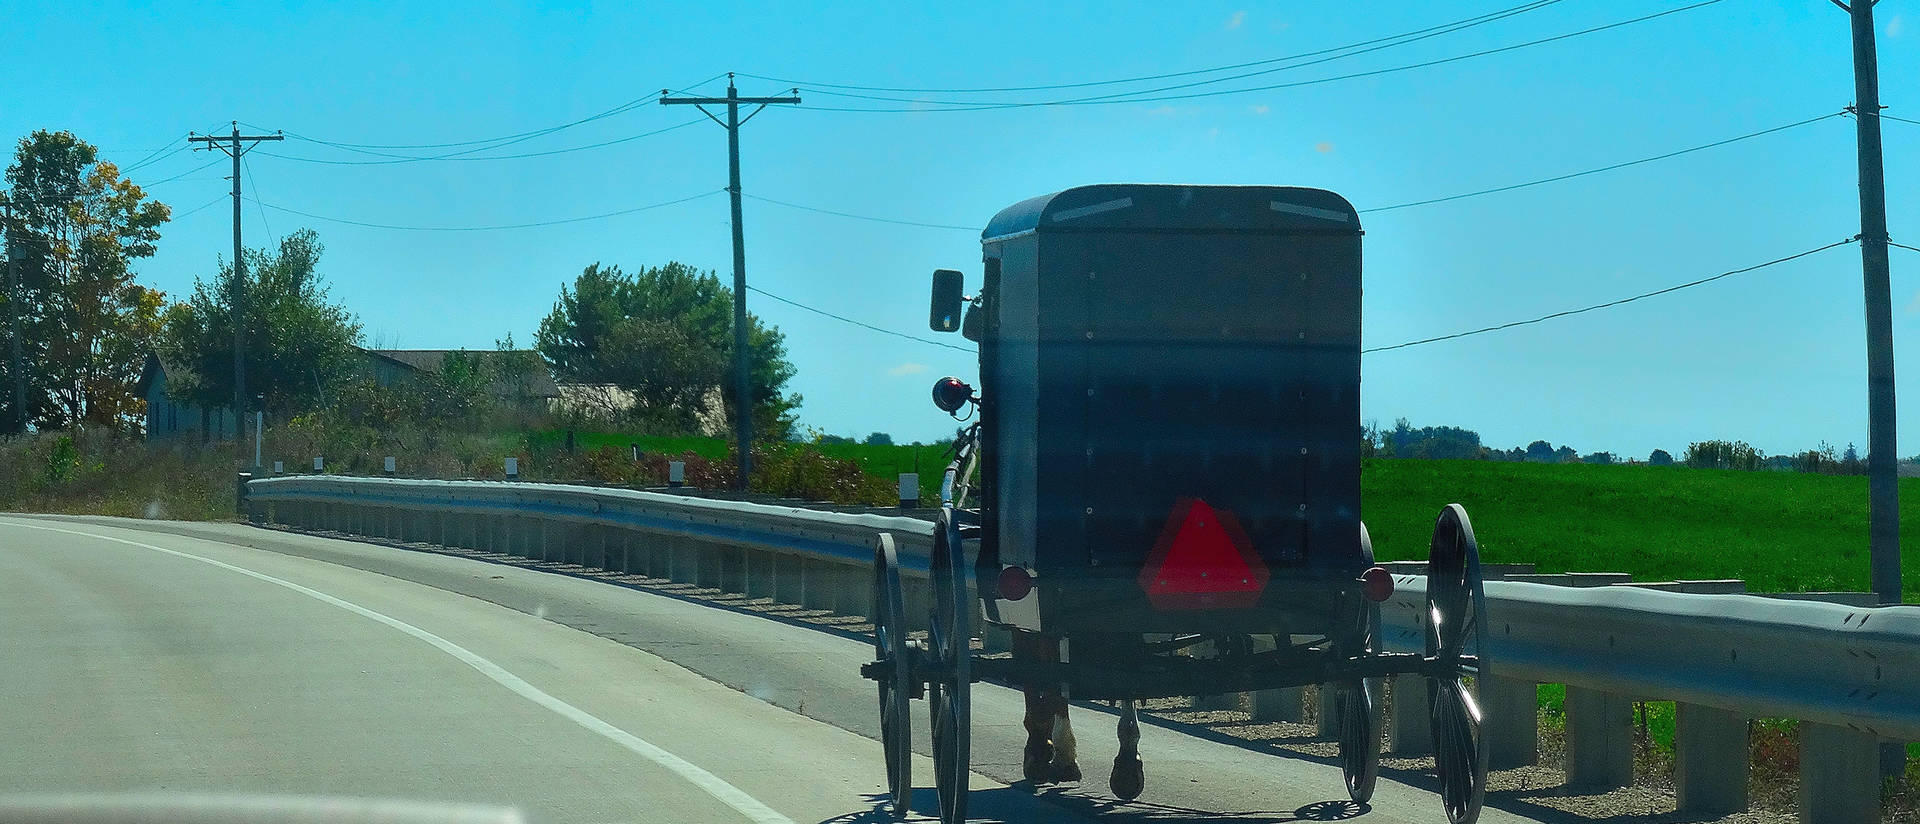 An Amish buggy travels on U.S. Highway 61. (Photo credit: Corey Coyle, Wikimedia Commons)